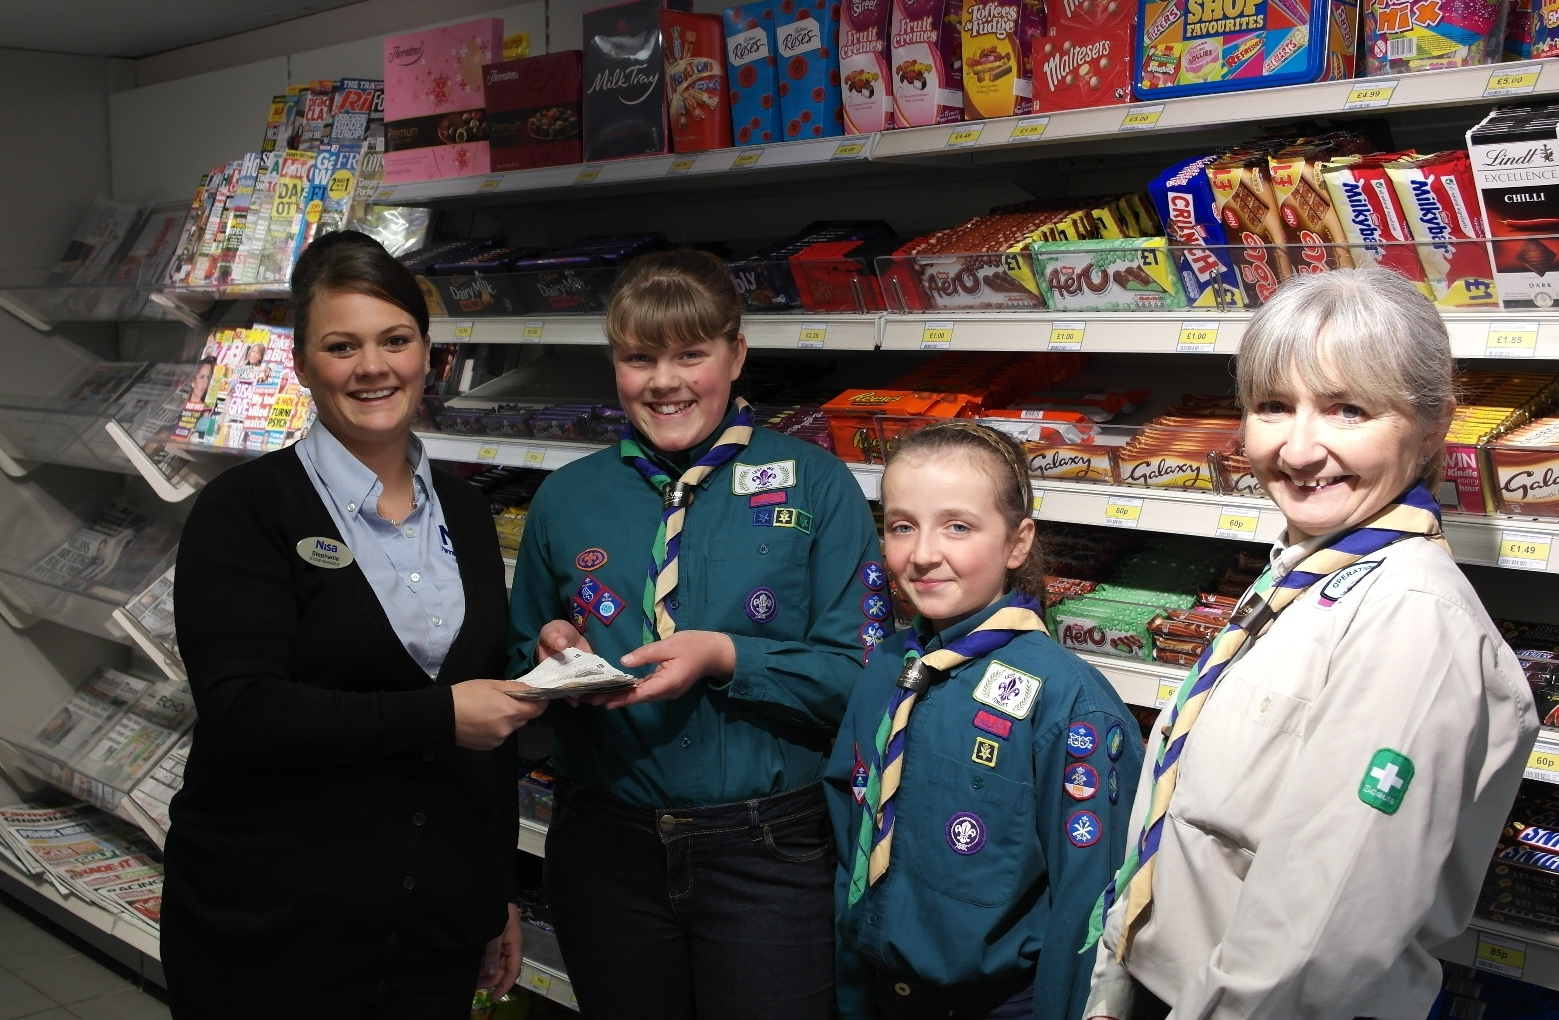 Stephanie Rhoden, Twyning shop manager, with scouts Leah and Amaya and scout leader Lorna Herold.